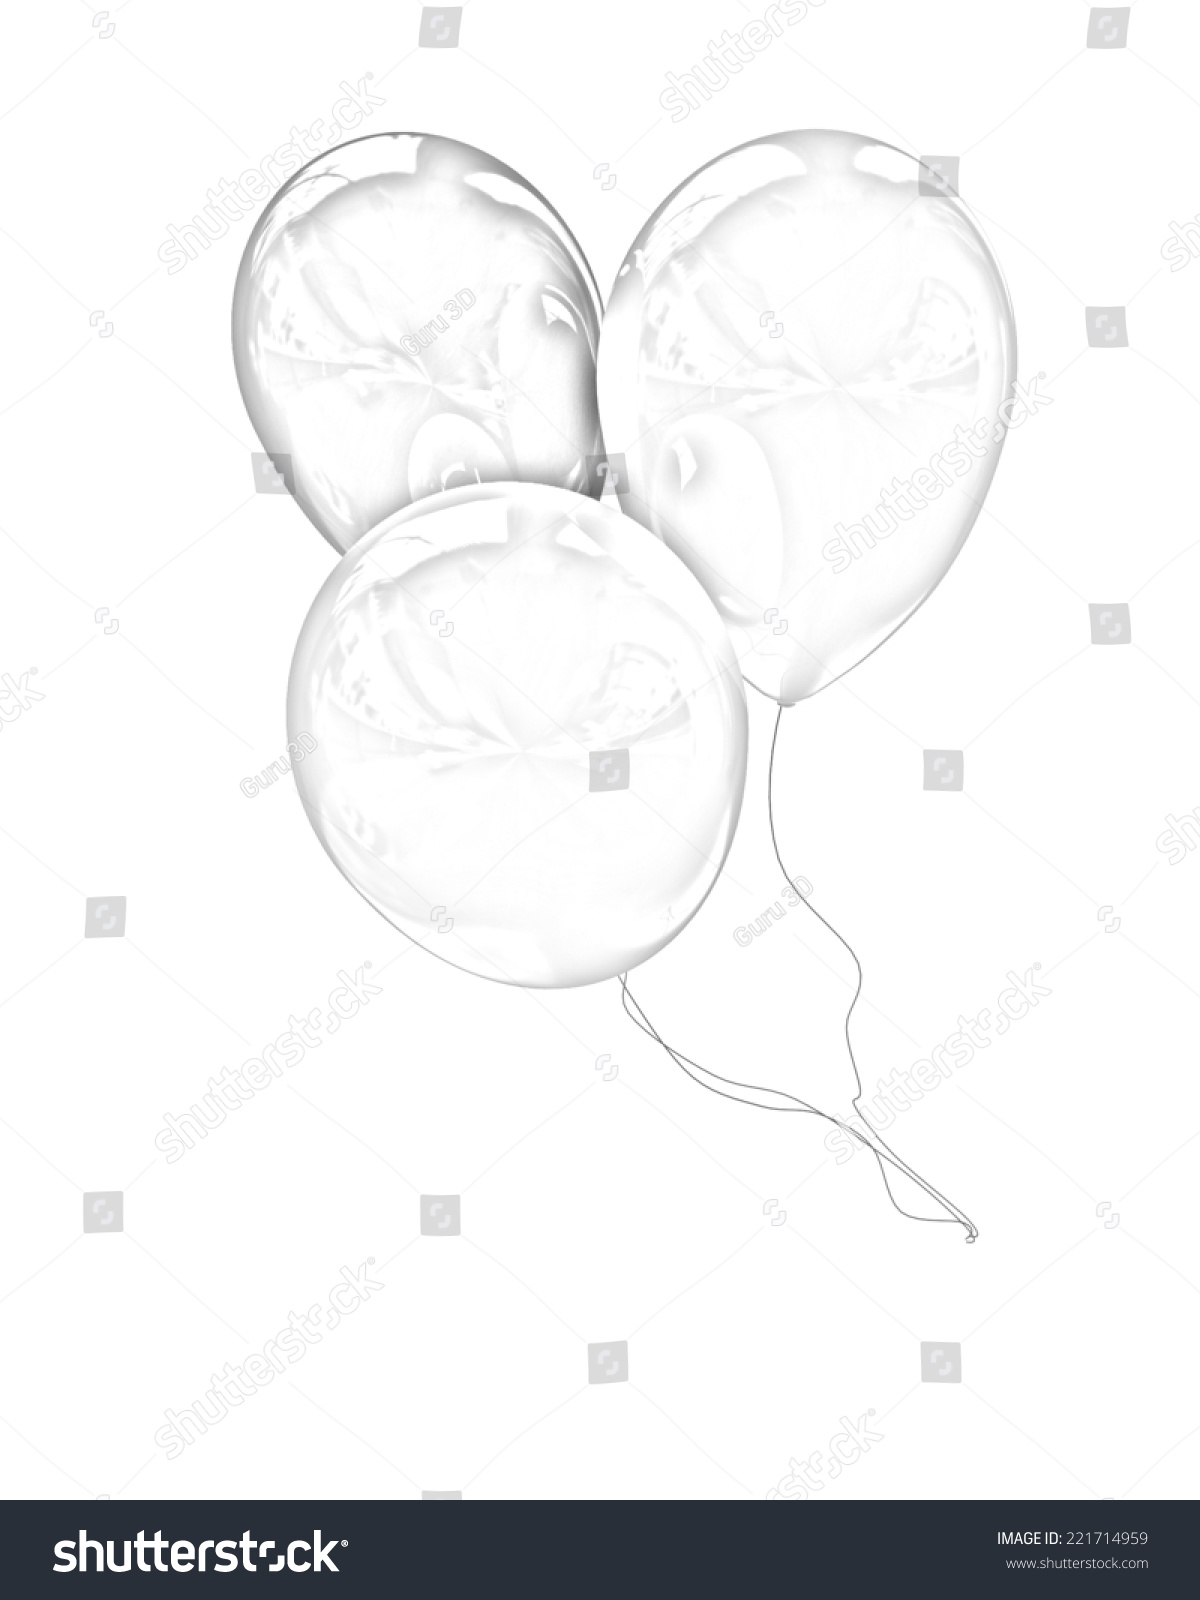 3d balloons on a white background pencil drawing